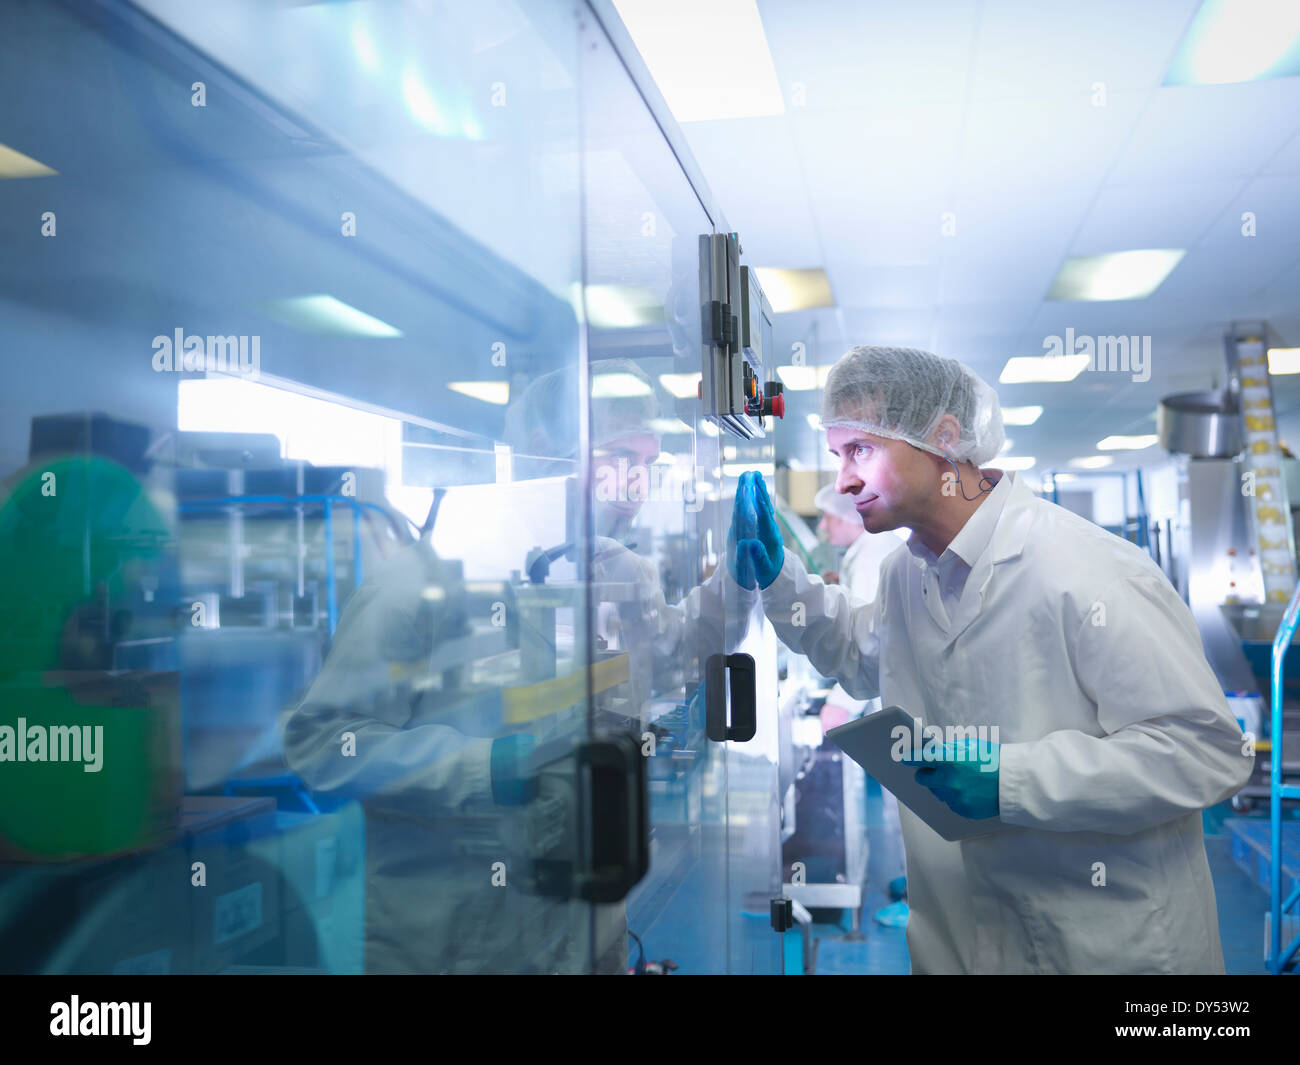 Worker inspecting tablets as they are put into packaging in pharmaceutical factory - Stock Image